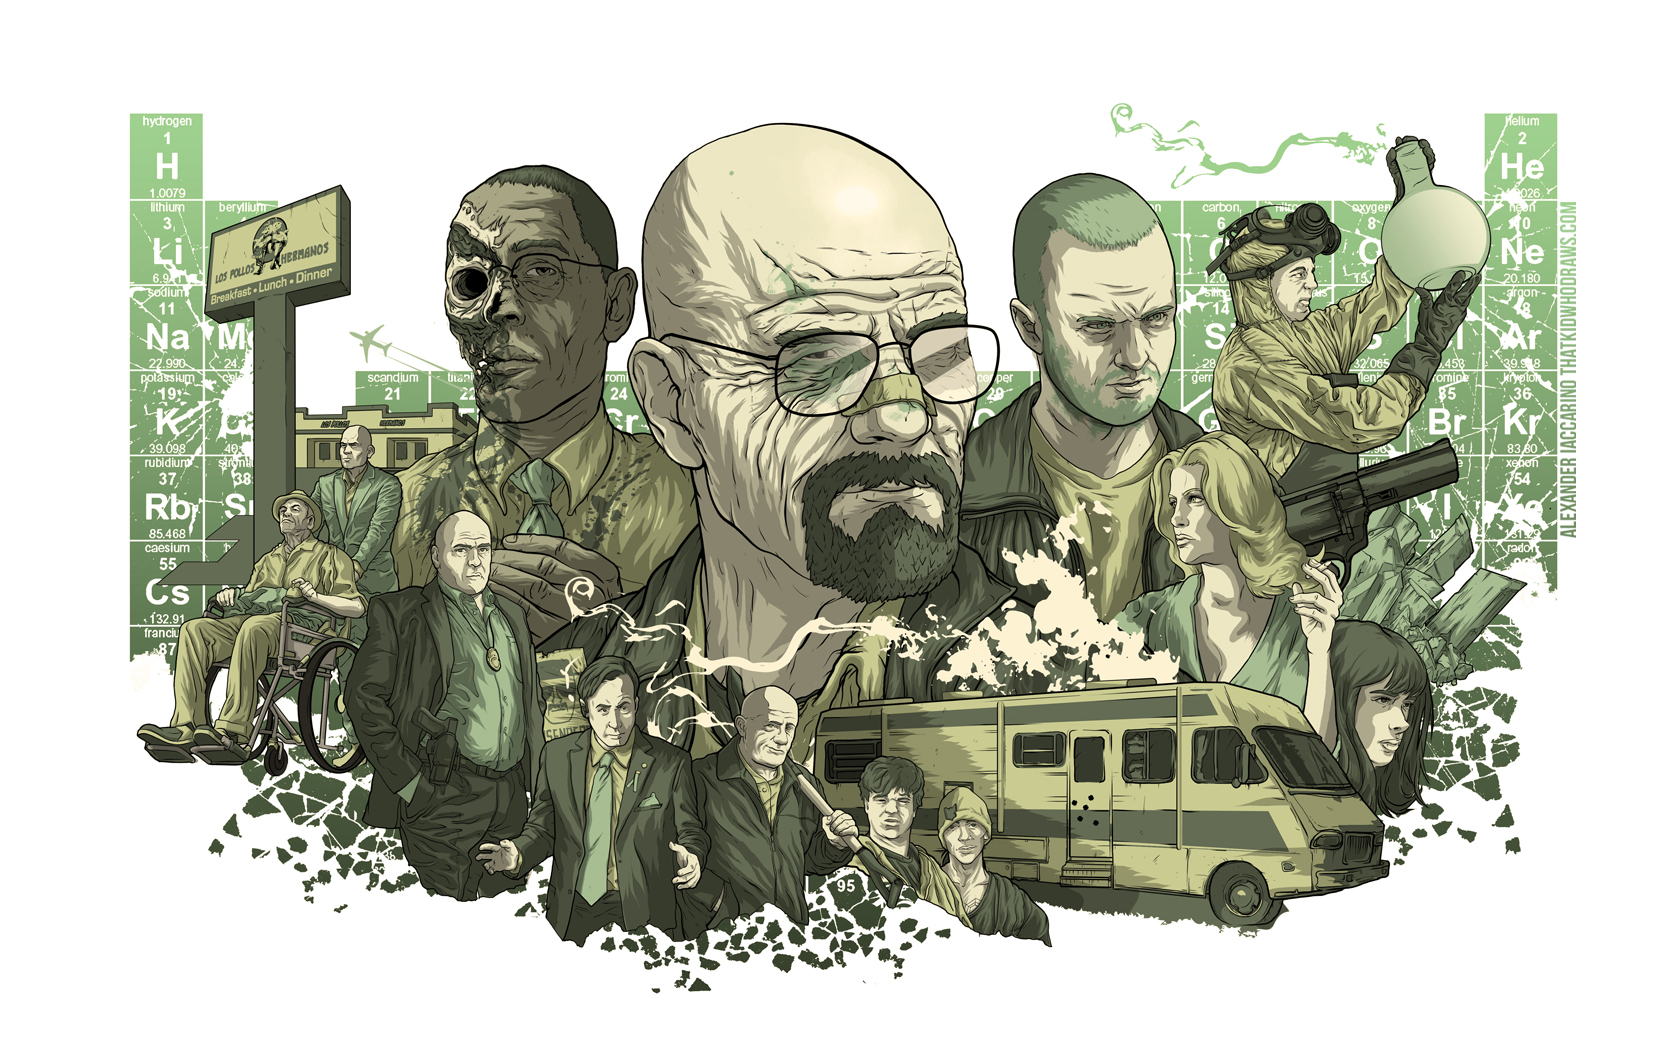 Breaking Bad Res: 1680x1050 / Size:1063kb. Views: 81995